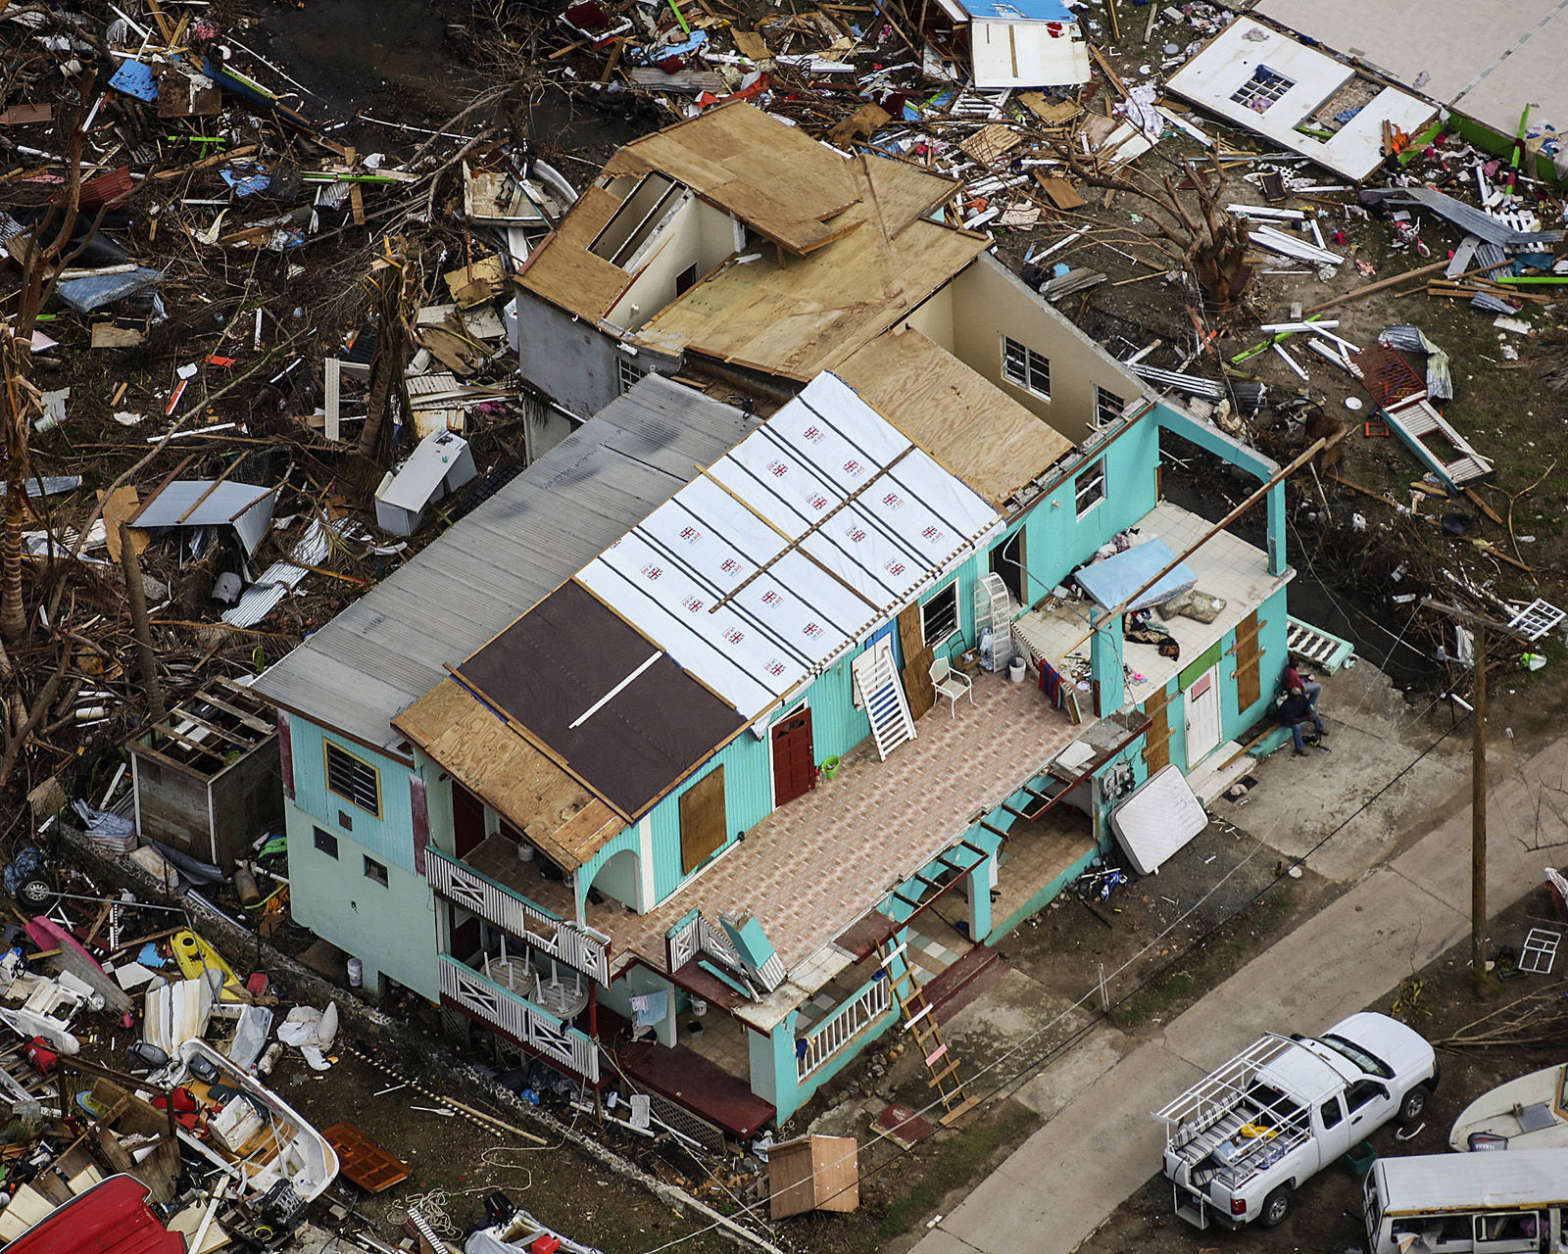 This photo provided by the Royal Navy and taken on Sunday, Sept. 24, 2017 shows the devastation left by Hurricane Irma in Jost Van Dyke, British Virgin Islands. Irma, once the most powerful hurricane ever recorded in the open Atlantic, wreaked havoc in parts of the Caribbean — Antigua and Barbuda, Anguilla and St. Martin, the U.S. and British Virgin Islands, Turks and Caicos, the Bahamas and parts of Cuba — leaving more than three dozen people dead and turning vacation island paradises into devastated landscapes. (Joel Rouse/Royal Navy via AP)